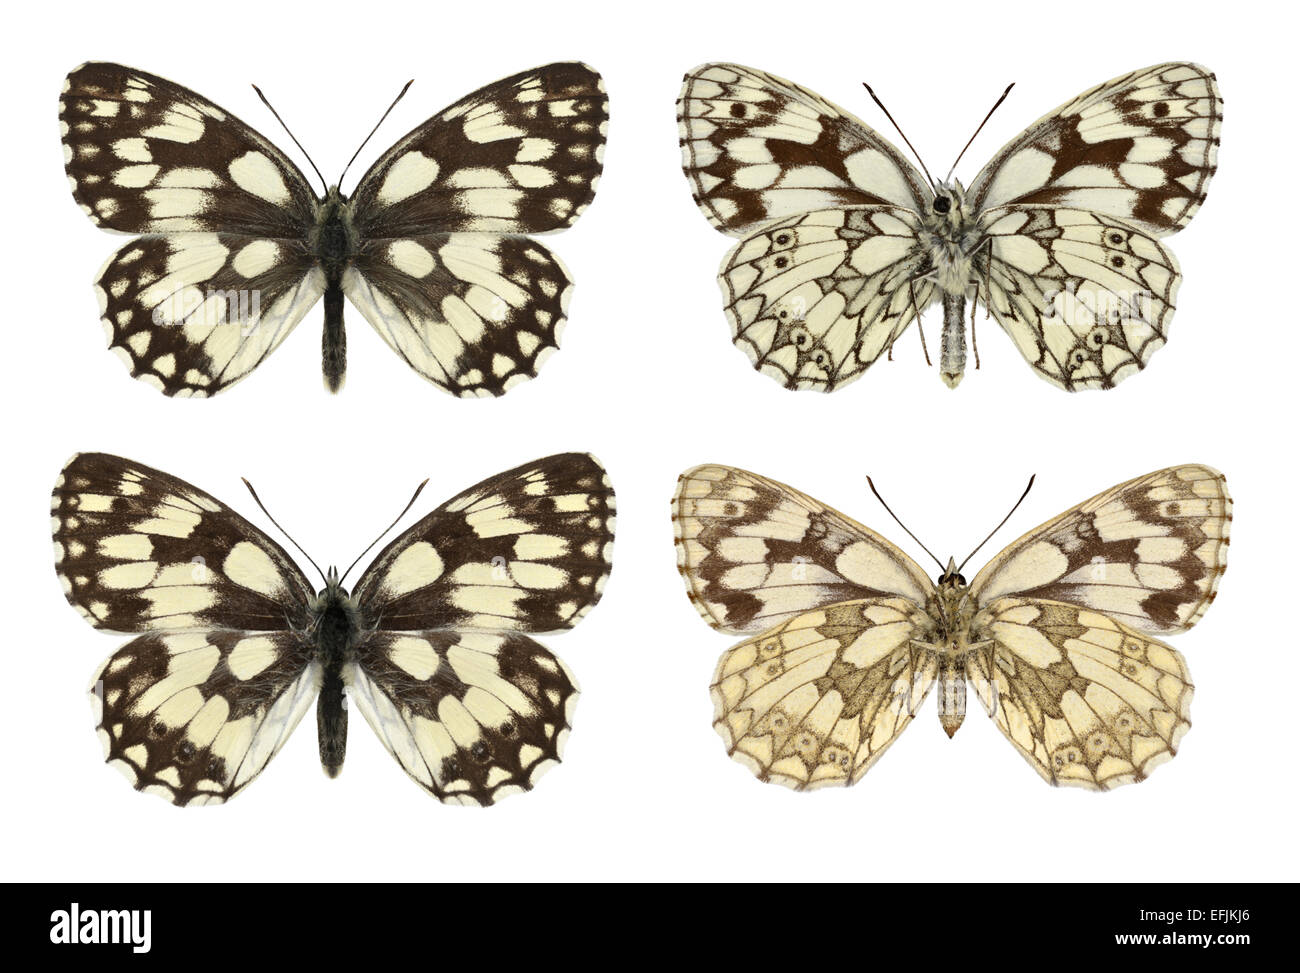 Marbled White - Melanargia galathea - male (top row) - female (bottom row). - Stock Image